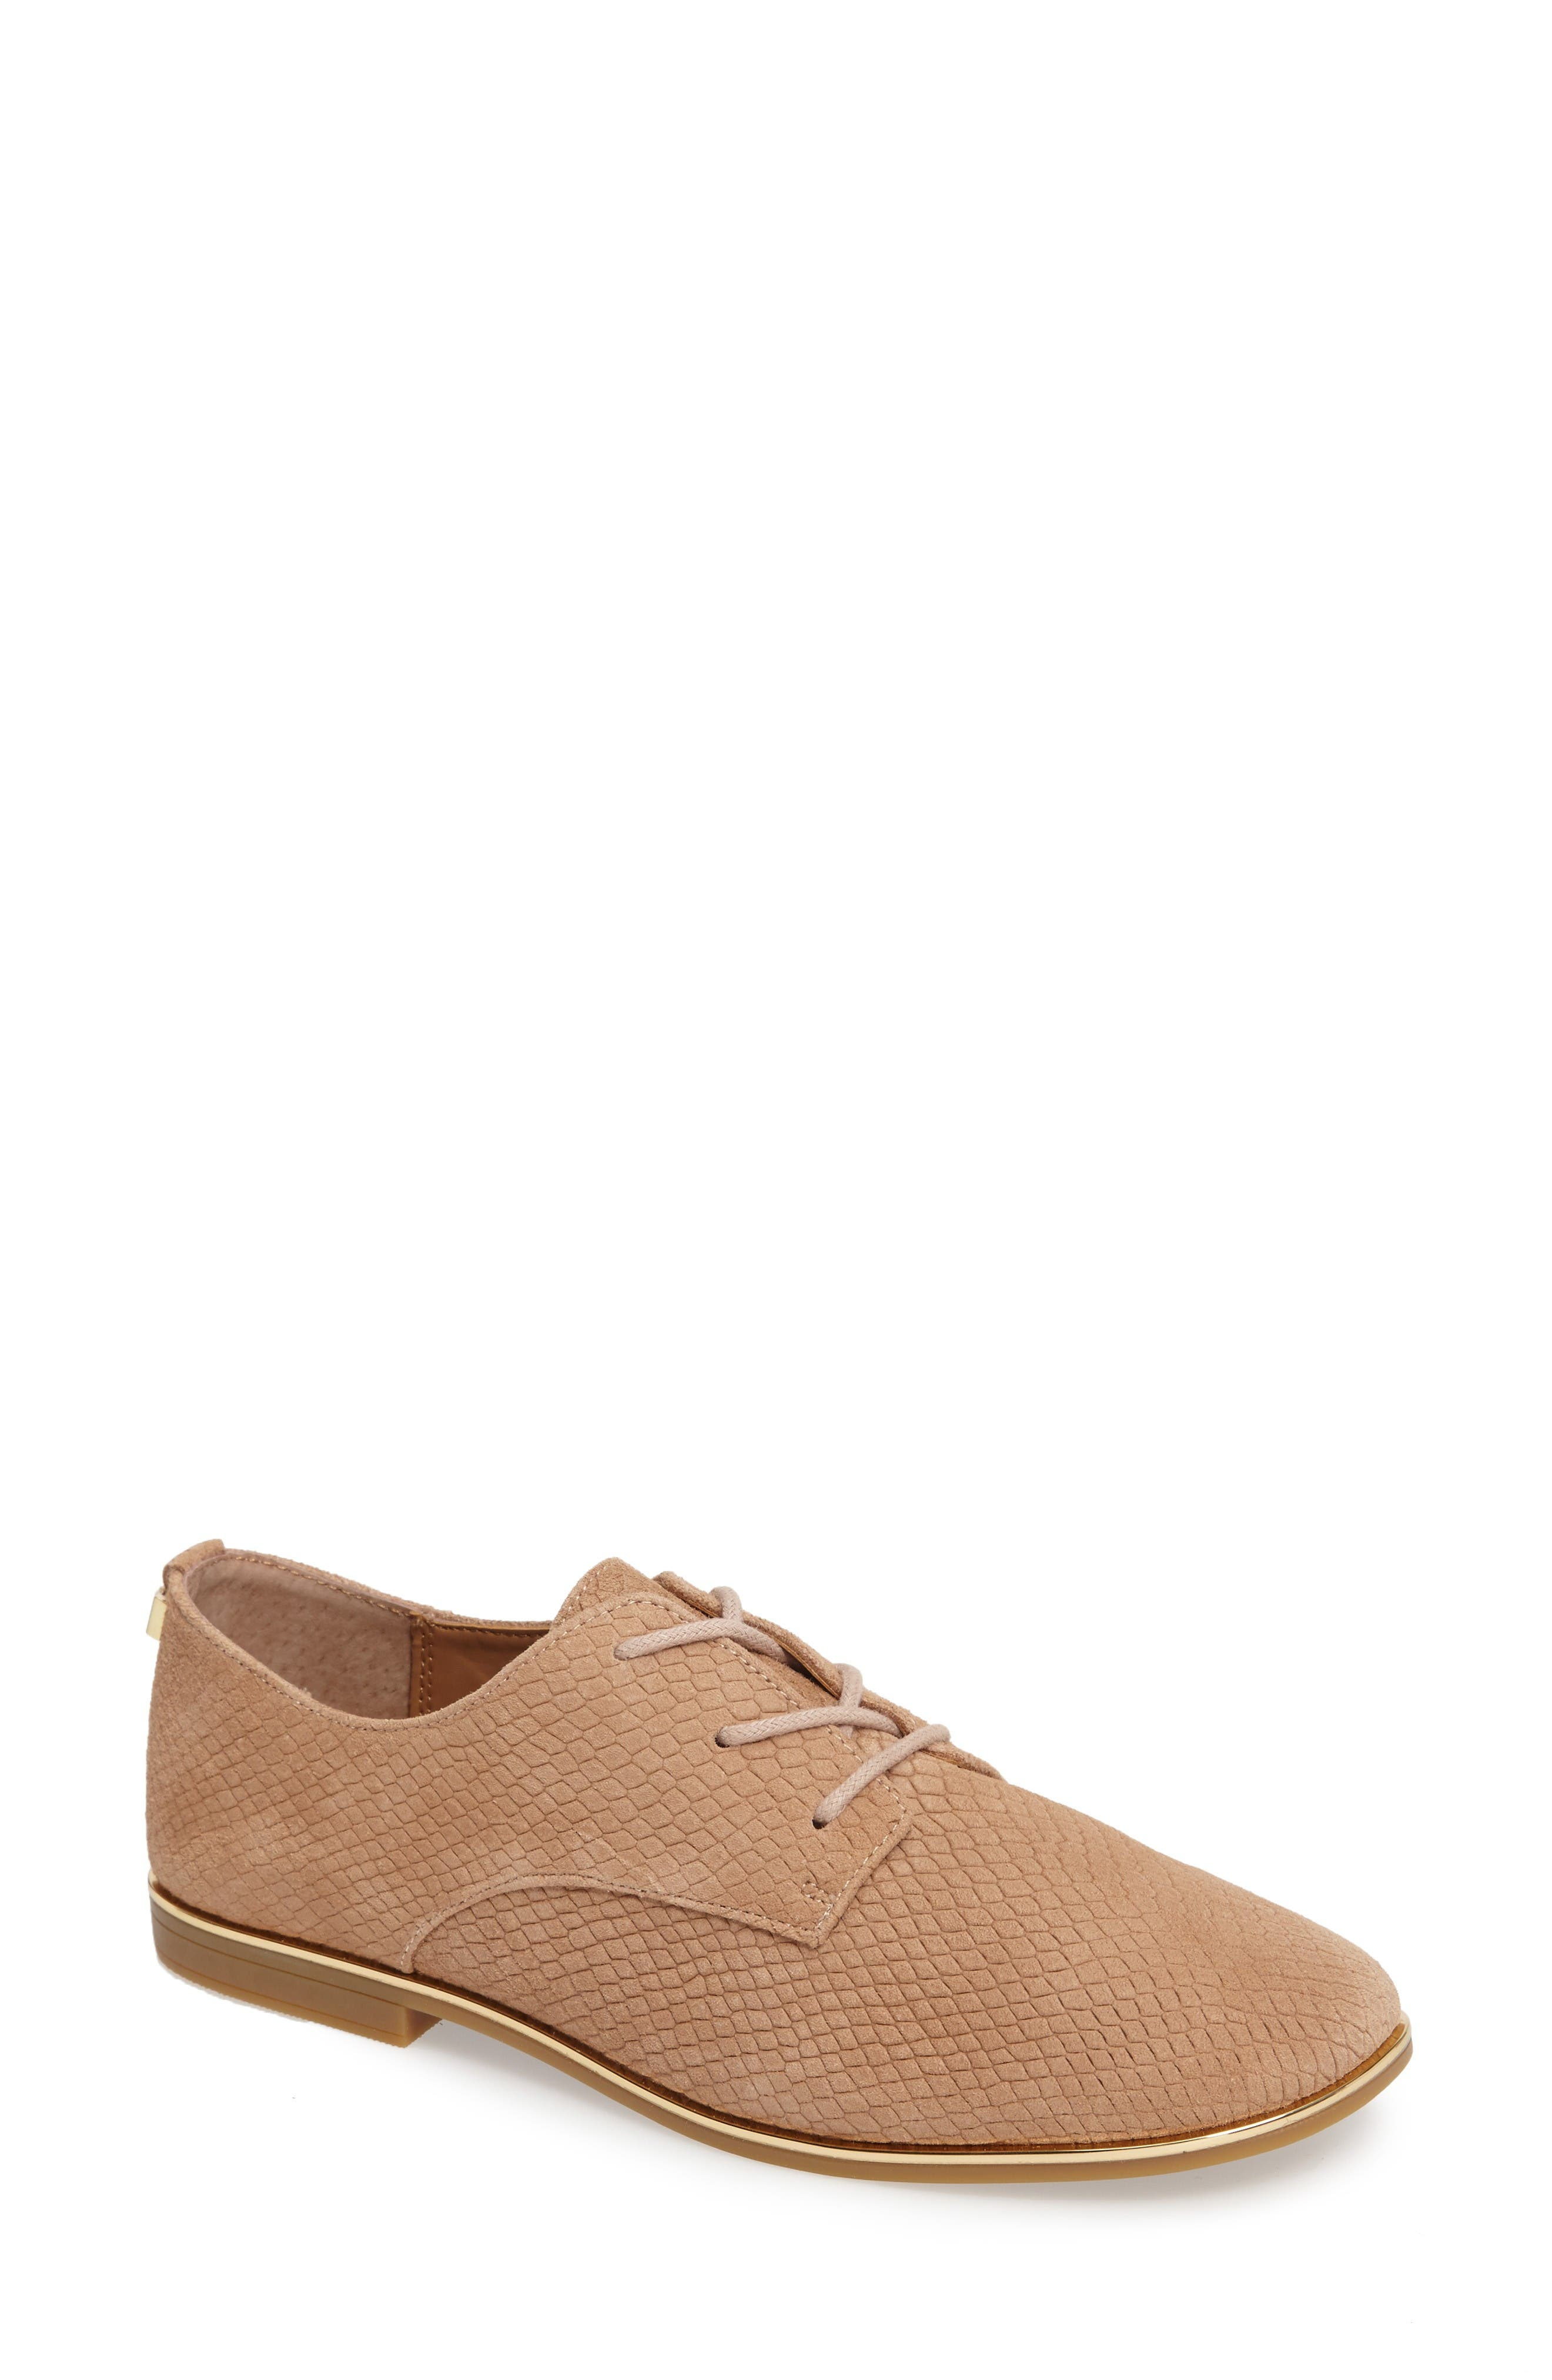 Cory Textured Oxford,                         Main,                         color, Cocoon/ Warm Gold Nubuck